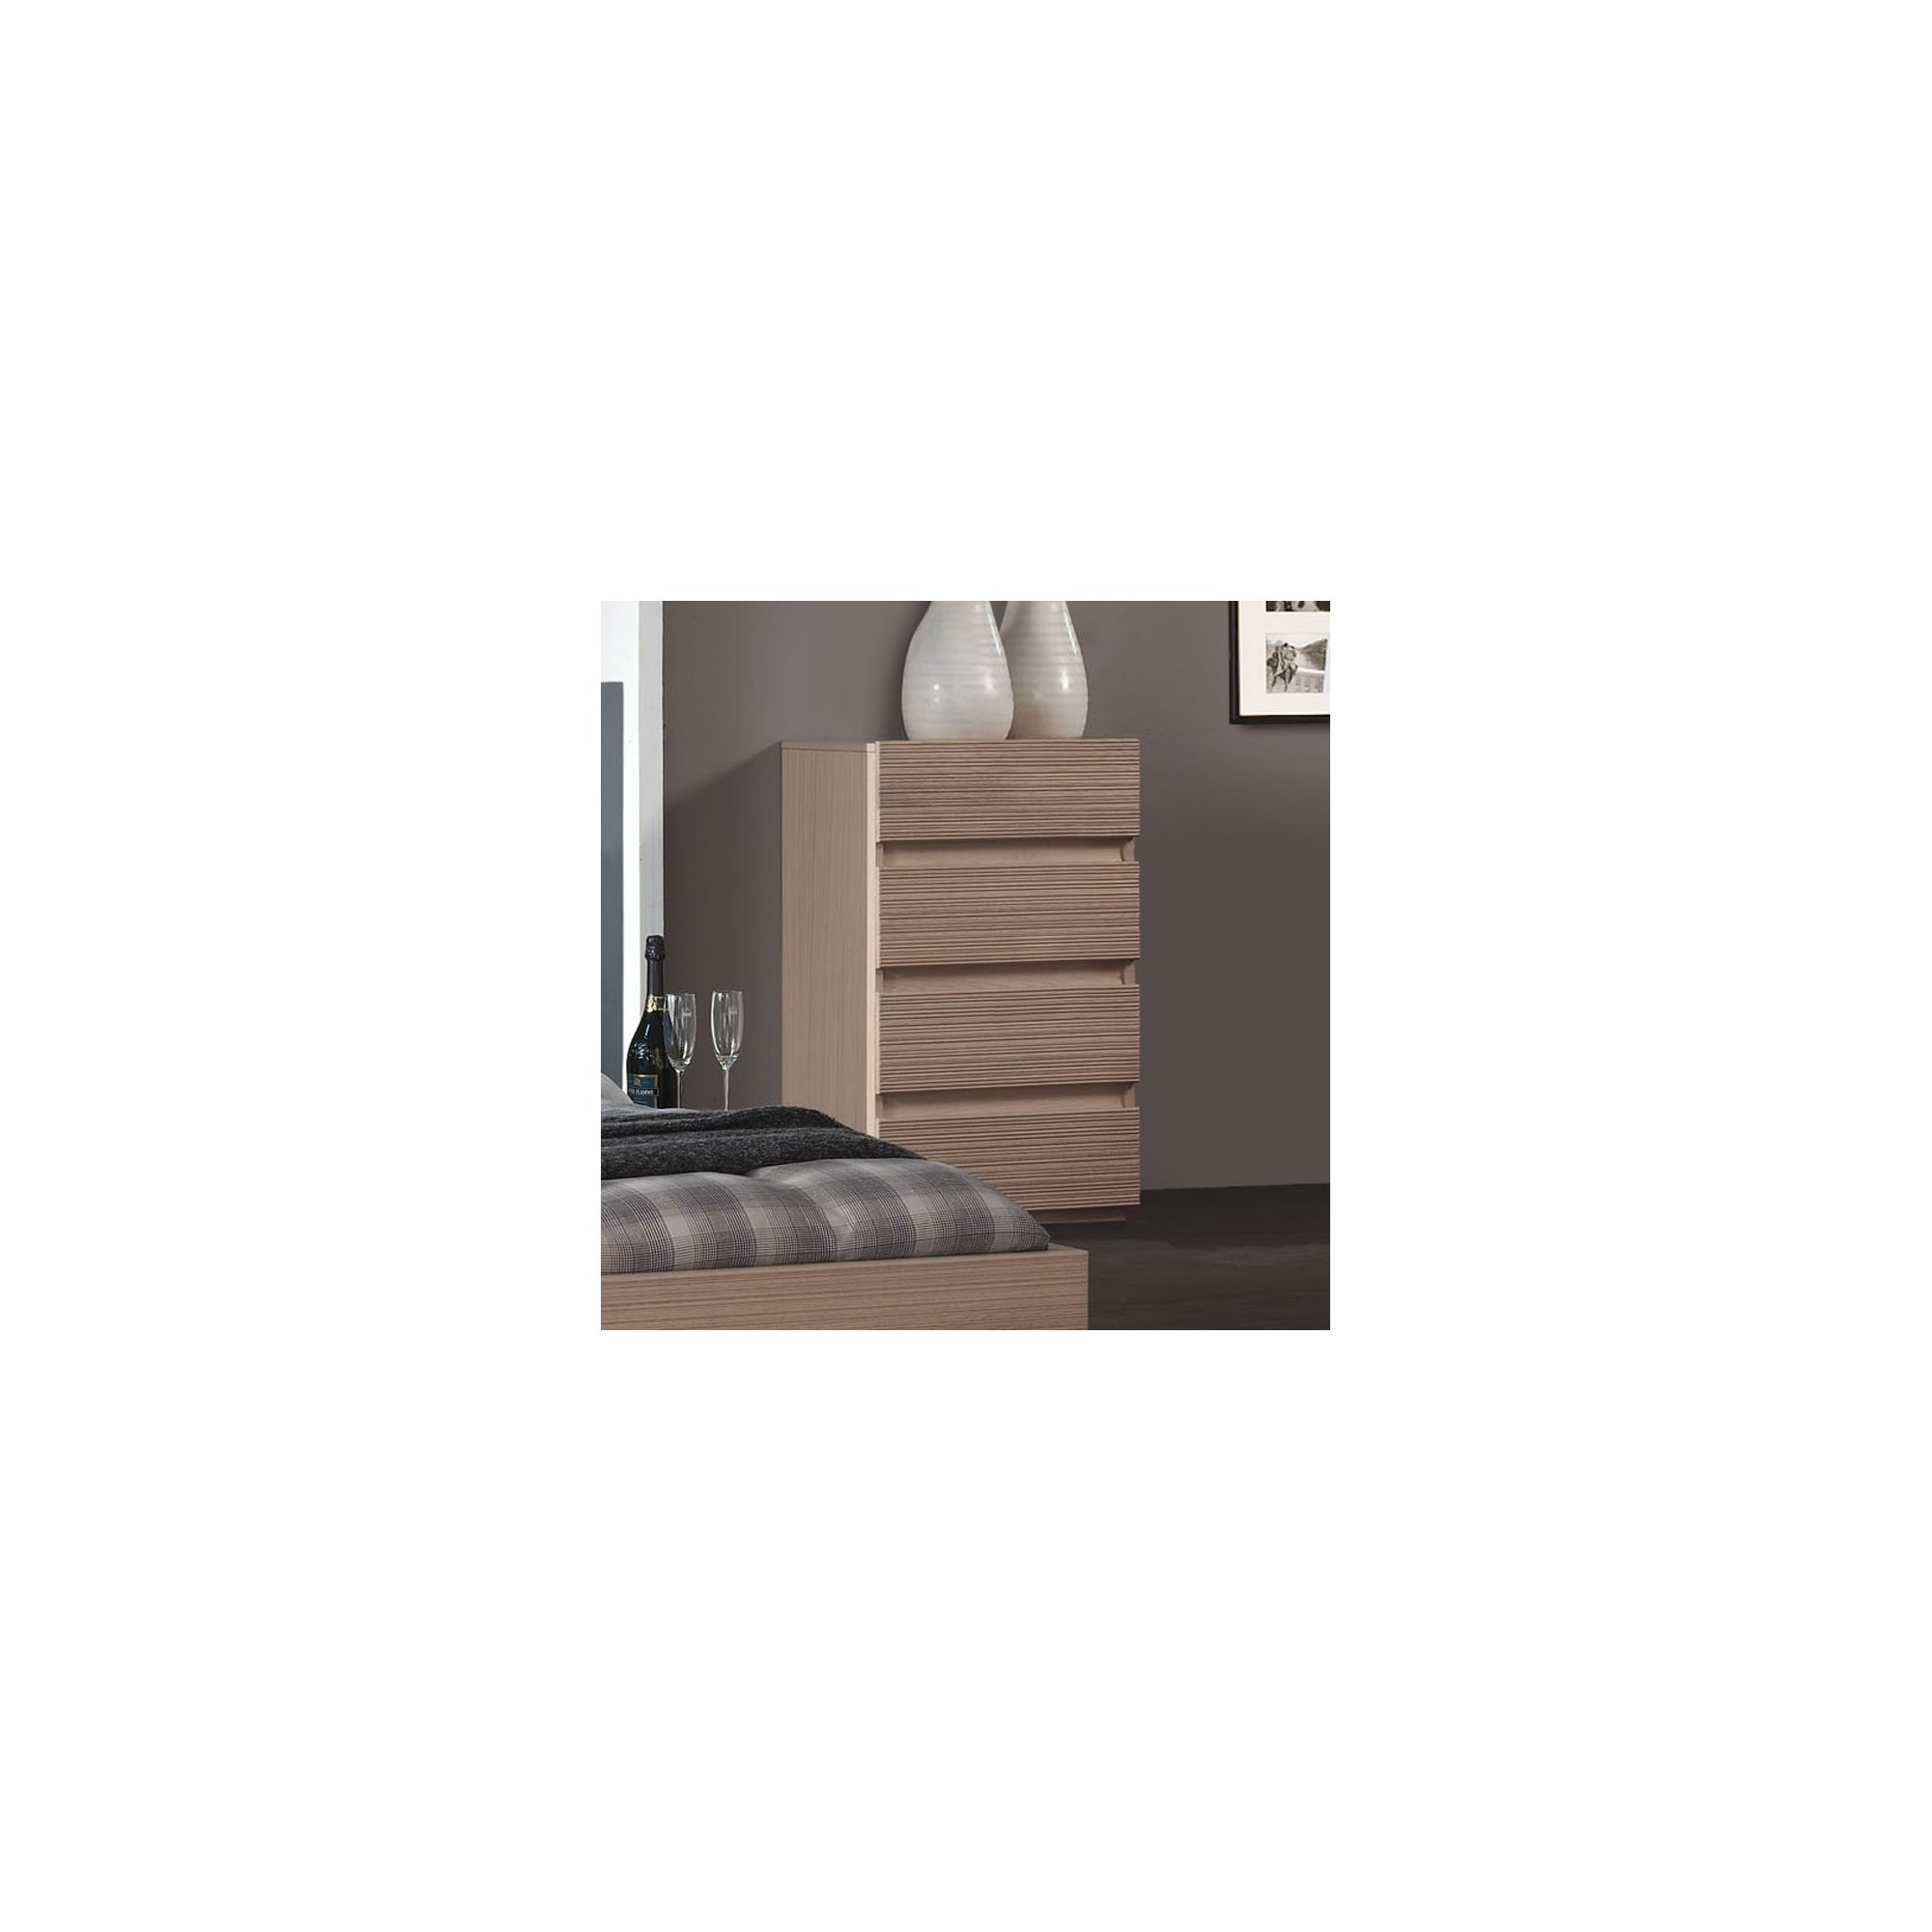 Sleepline Diva 4 Drawer Narrow Chest - Grey Mat Lacquered at Tesco Direct